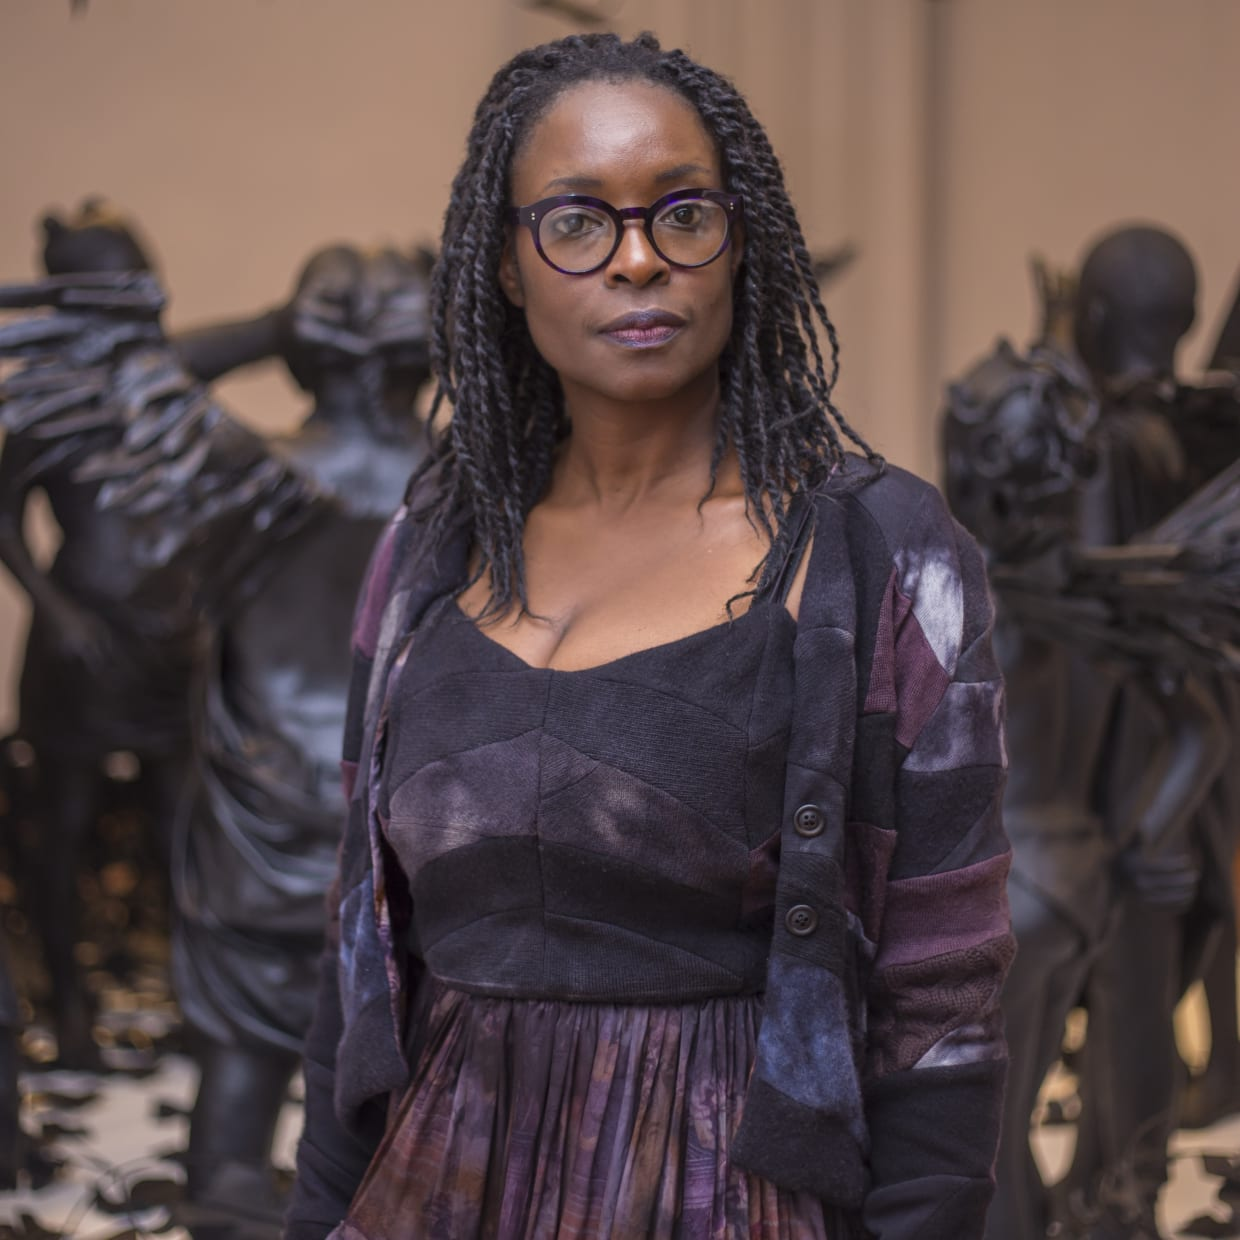 'A night with Peju Alatise' by Black Creators Matter at Sulger-Buel Gallery